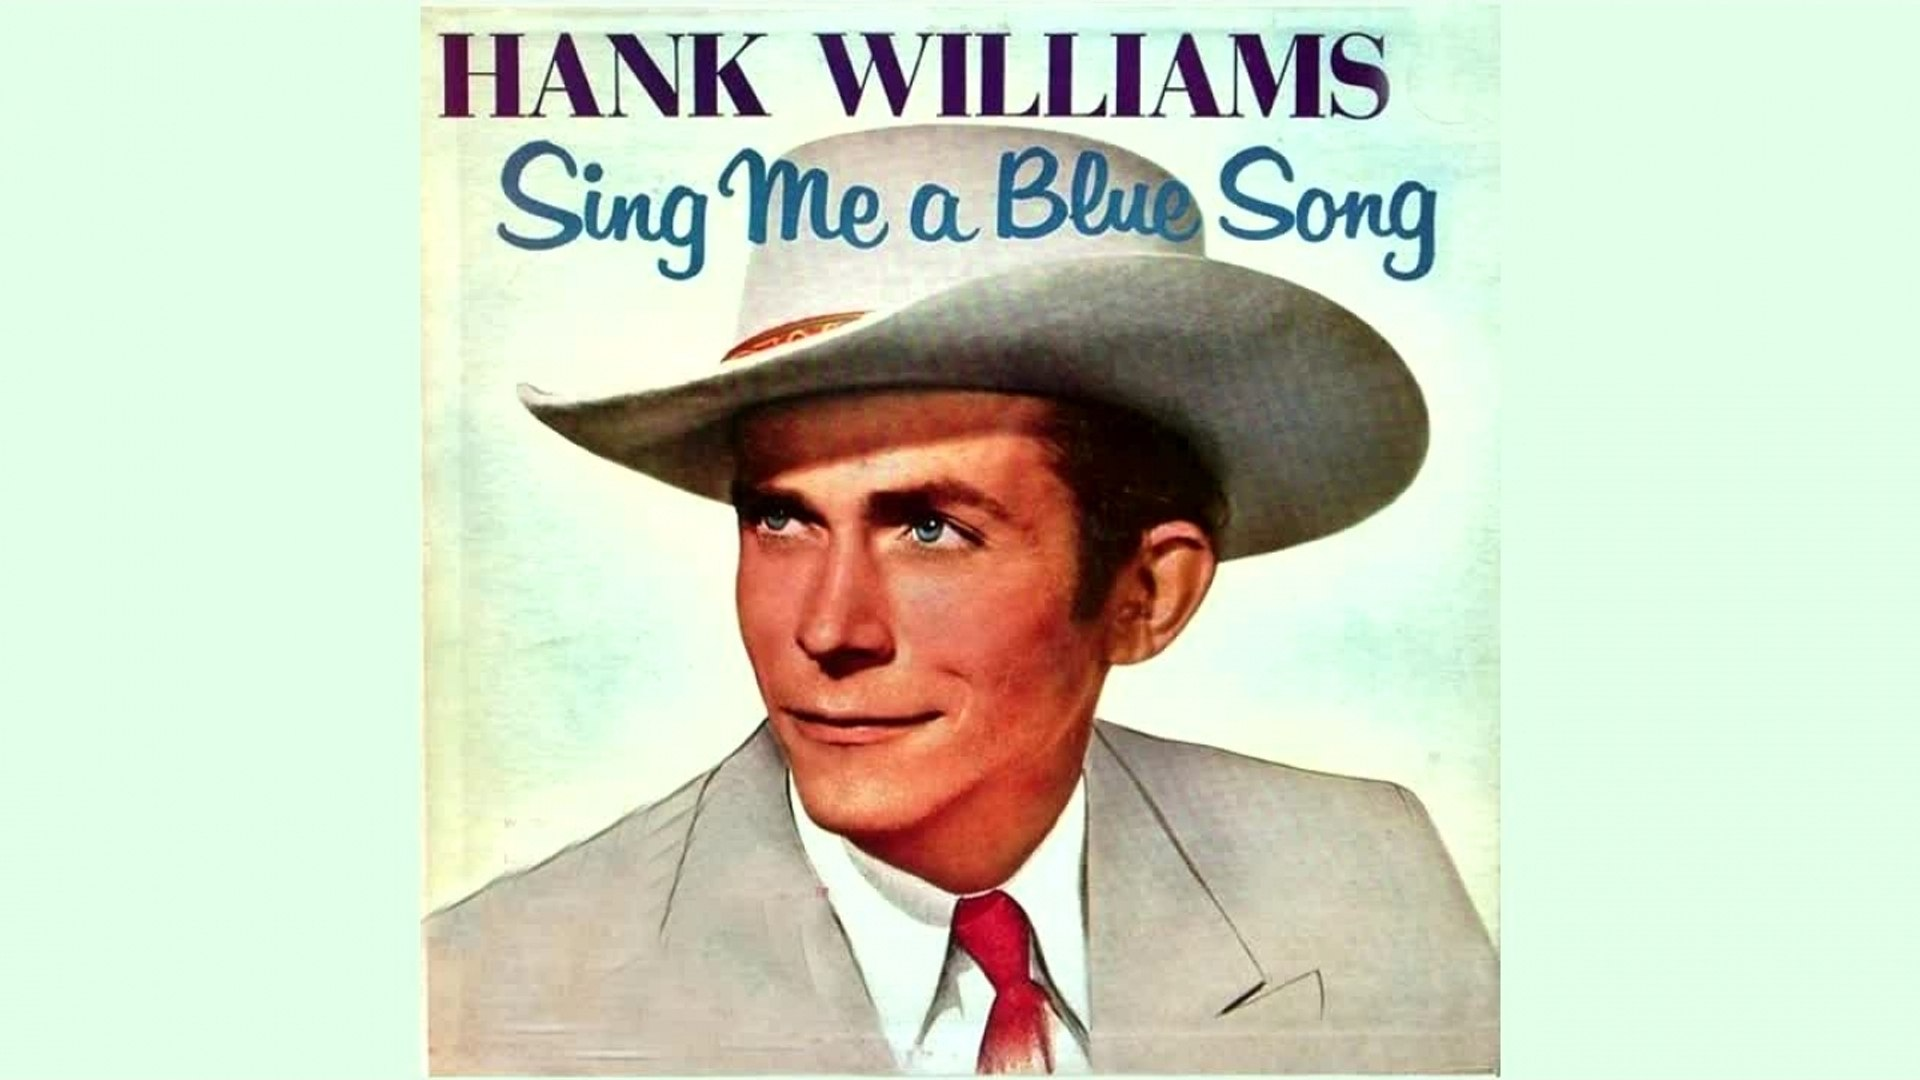 Hank Williams - Sing Me A Blue Song - Full Album